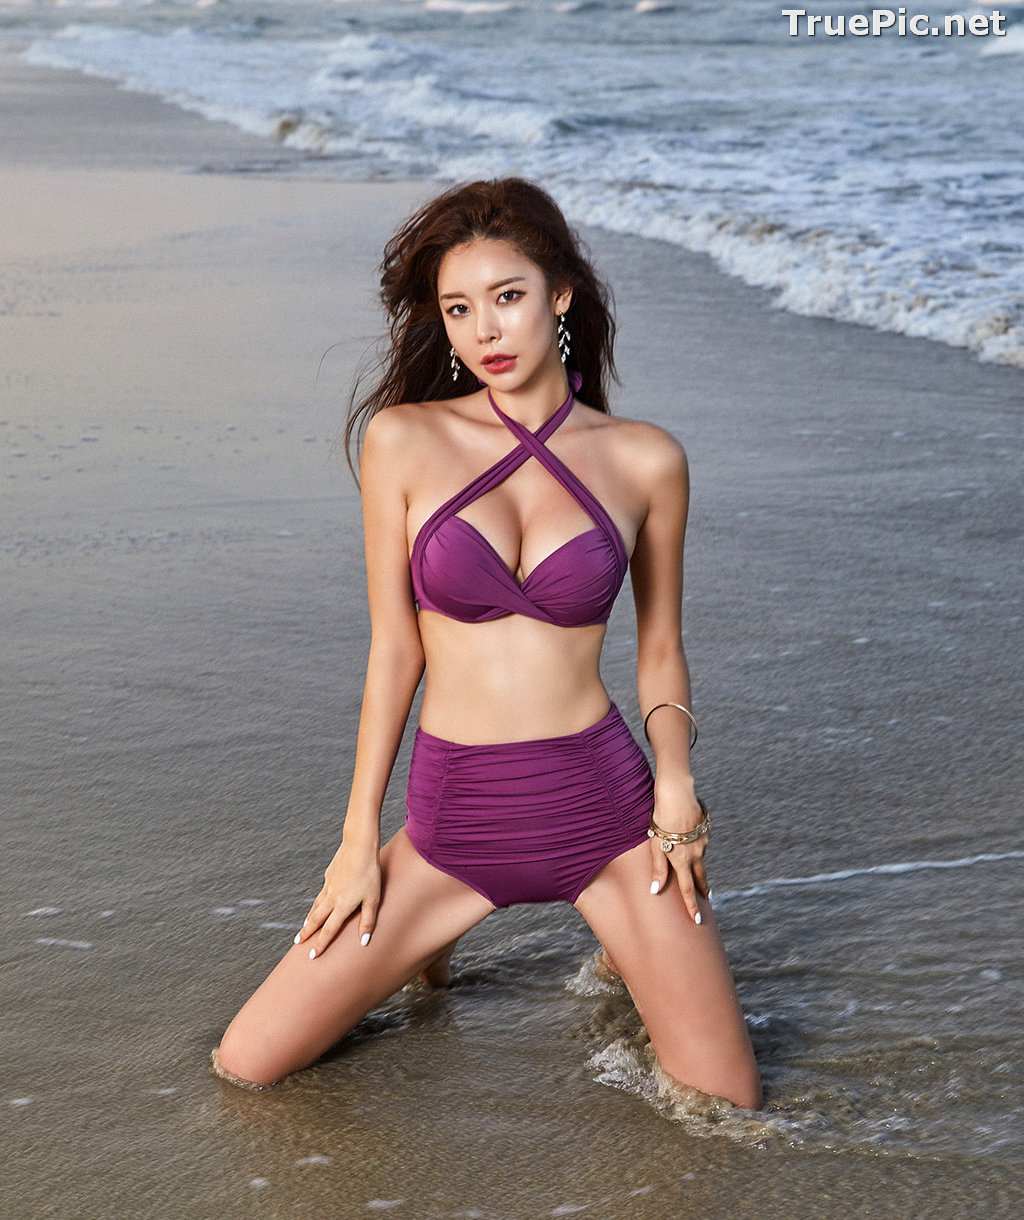 Image Park Da Hyun - Korean Fashion Model - RoseMellow Purple Bikini - TruePic.net - Picture-3